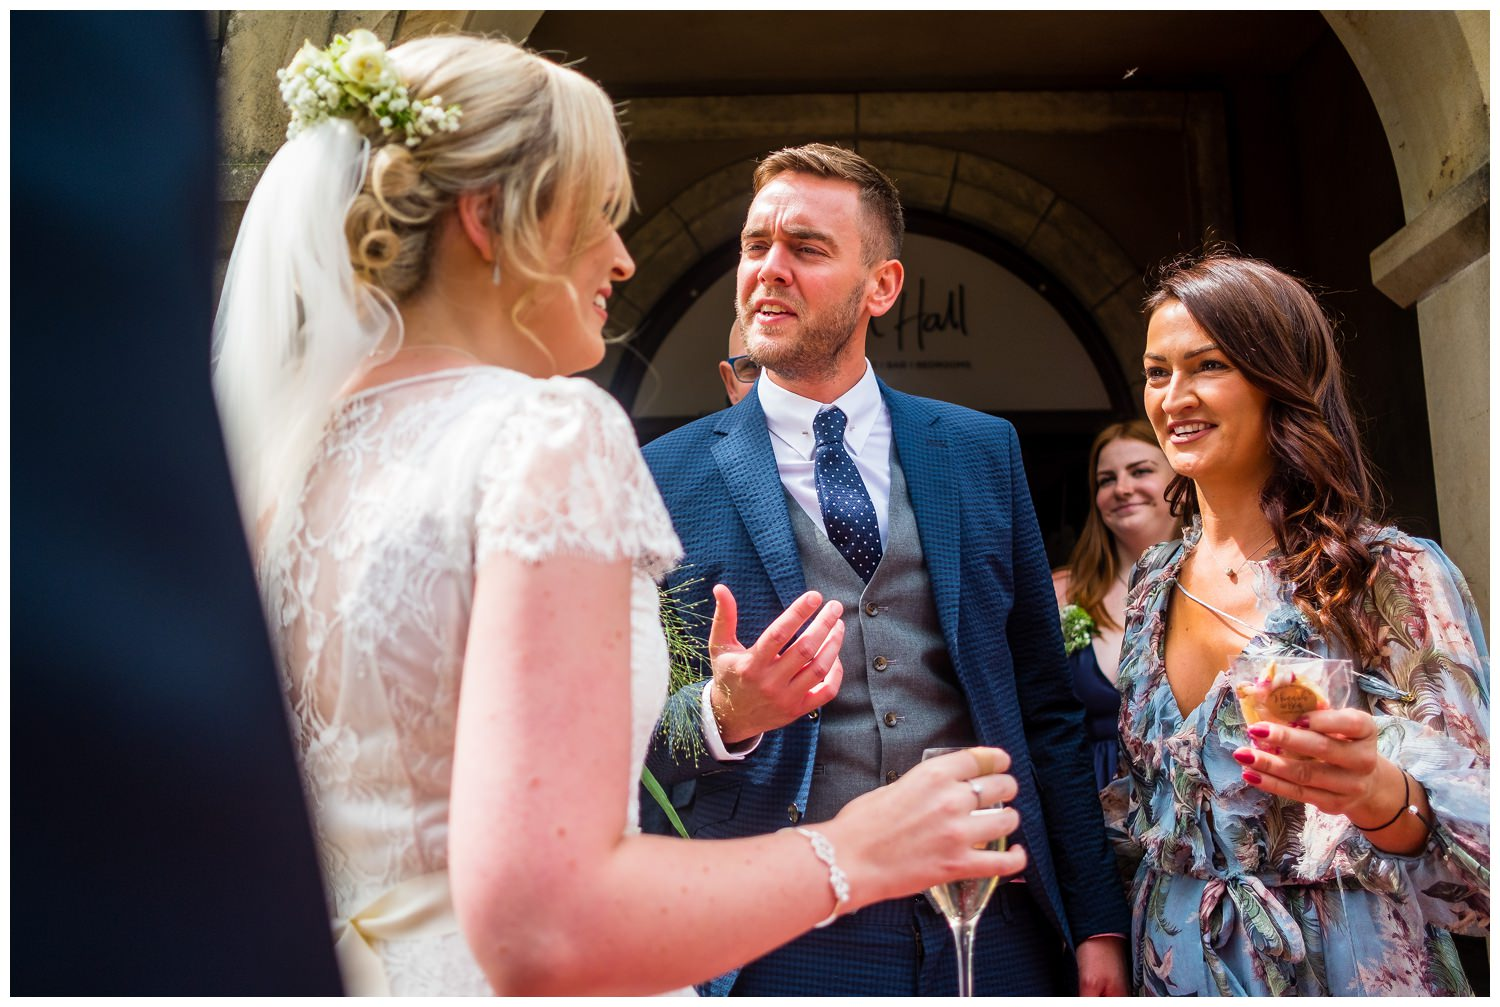 guests greeting newly weds after wedding ceremony